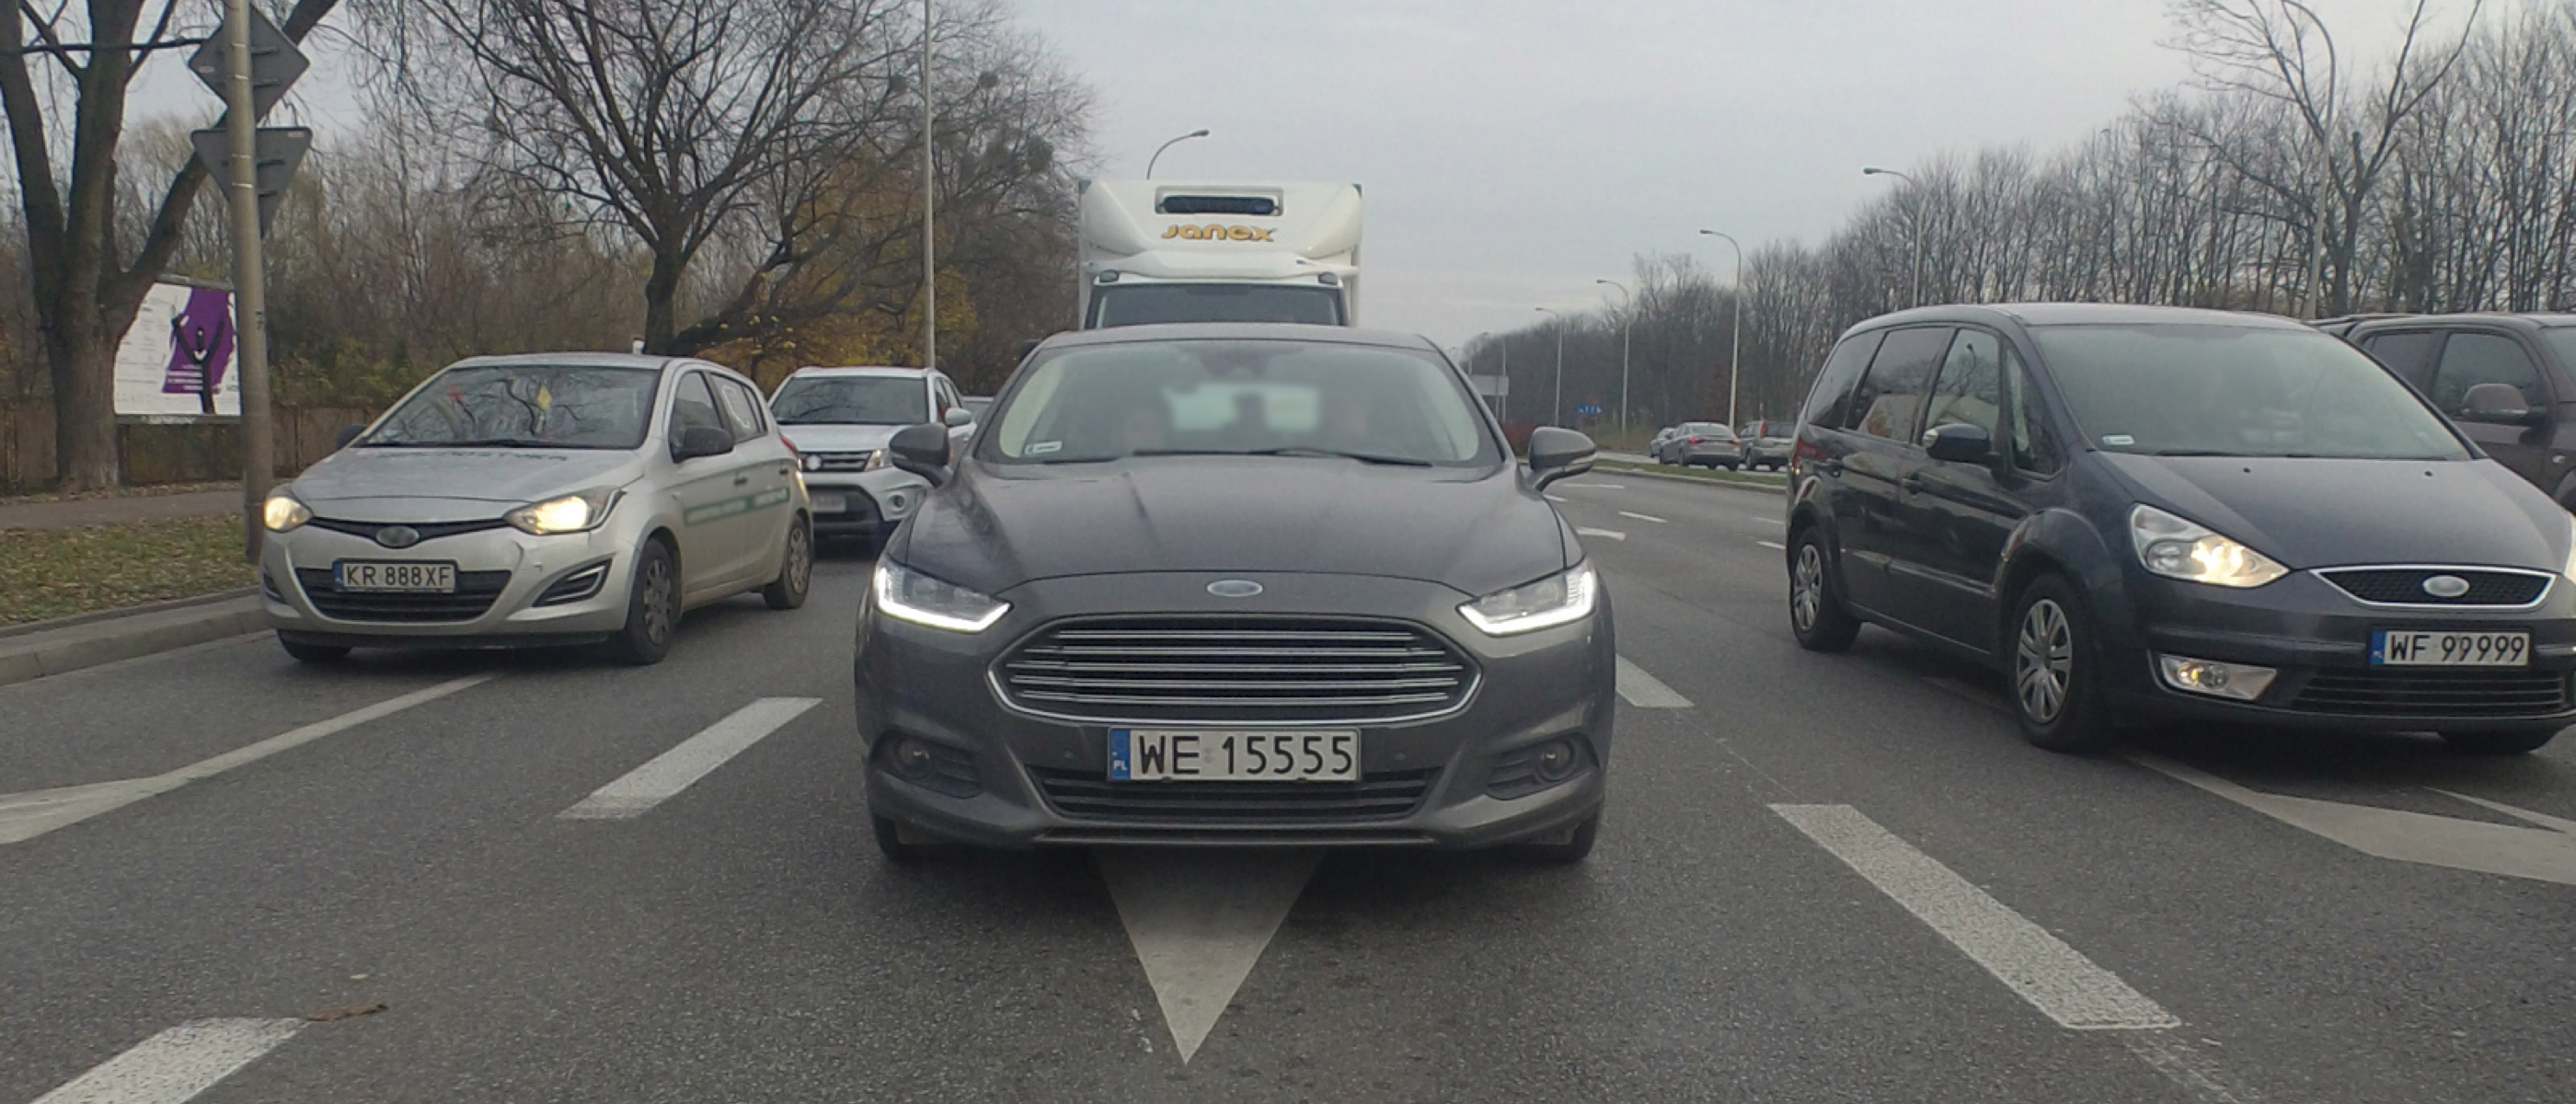 Car Detection & Recognition Using DNN Networks - The Startup